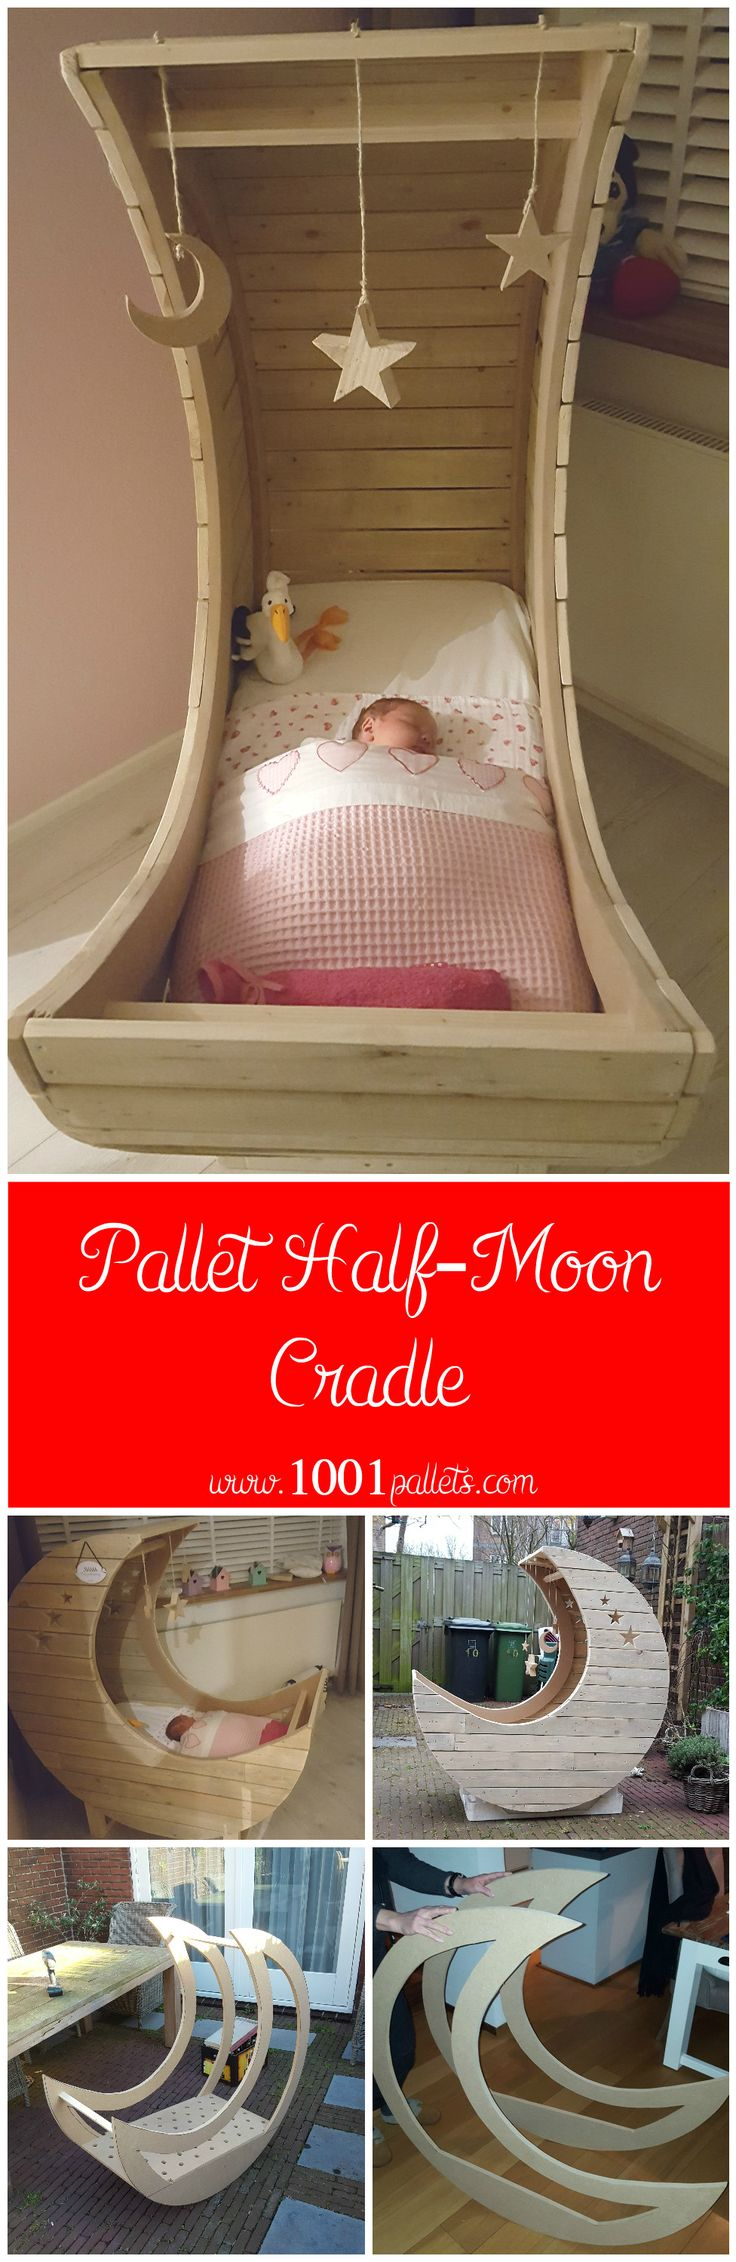 #Bedroom, #Cradle, #Kids, #MoonCradle, #PalletBed, #RecyclingWoodPallets I made this half-moon cradle from used pallets. I have all the pallets I needed from my work, so I don't know how much pallets exactly are in it. As always with any pallet project for a bedroom and even more for a baby or a kids, take a great care